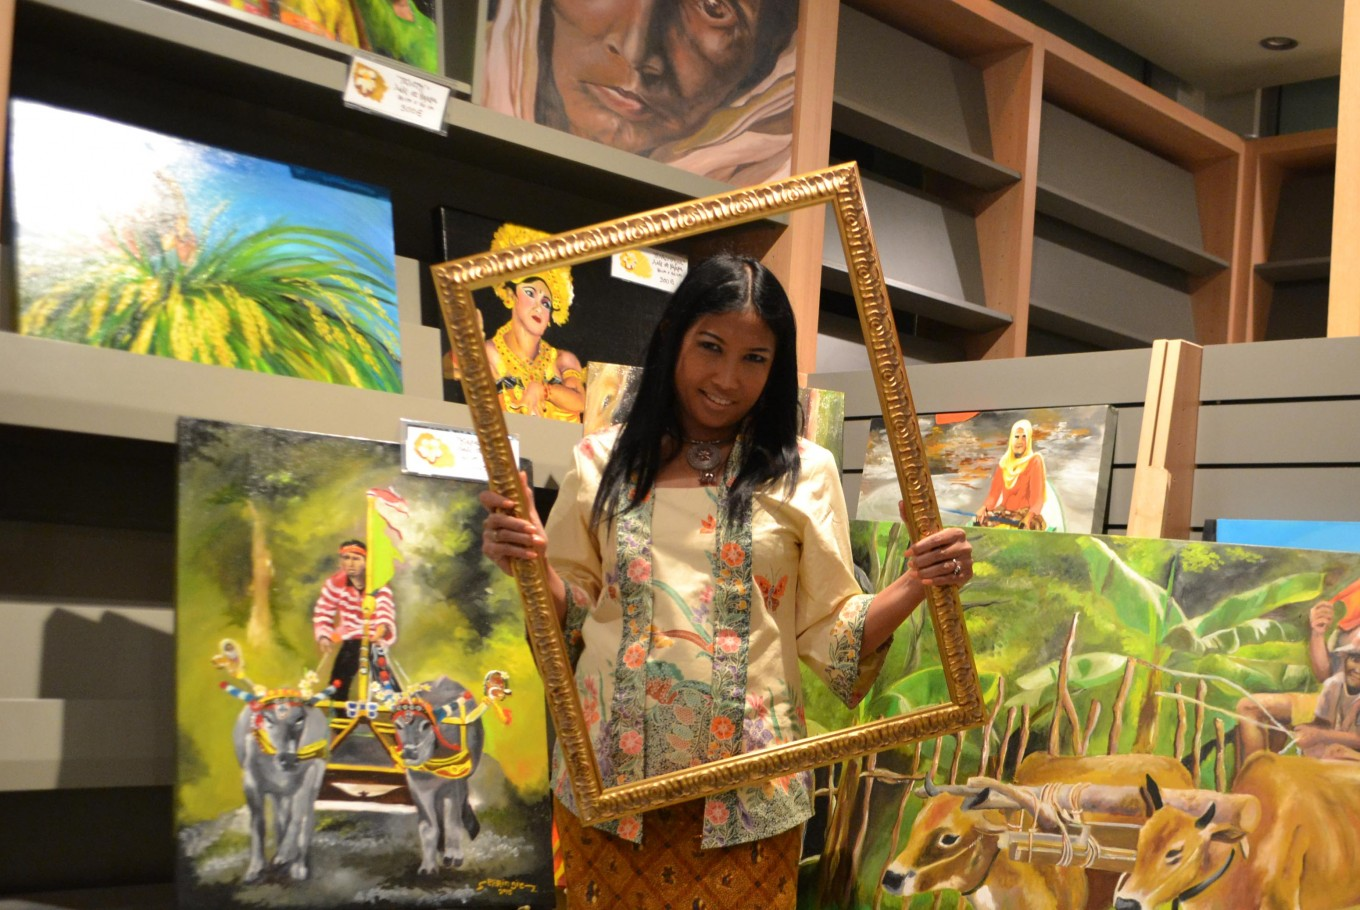 Cepu-born painter wants to showcase Indonesian culture on the international stage